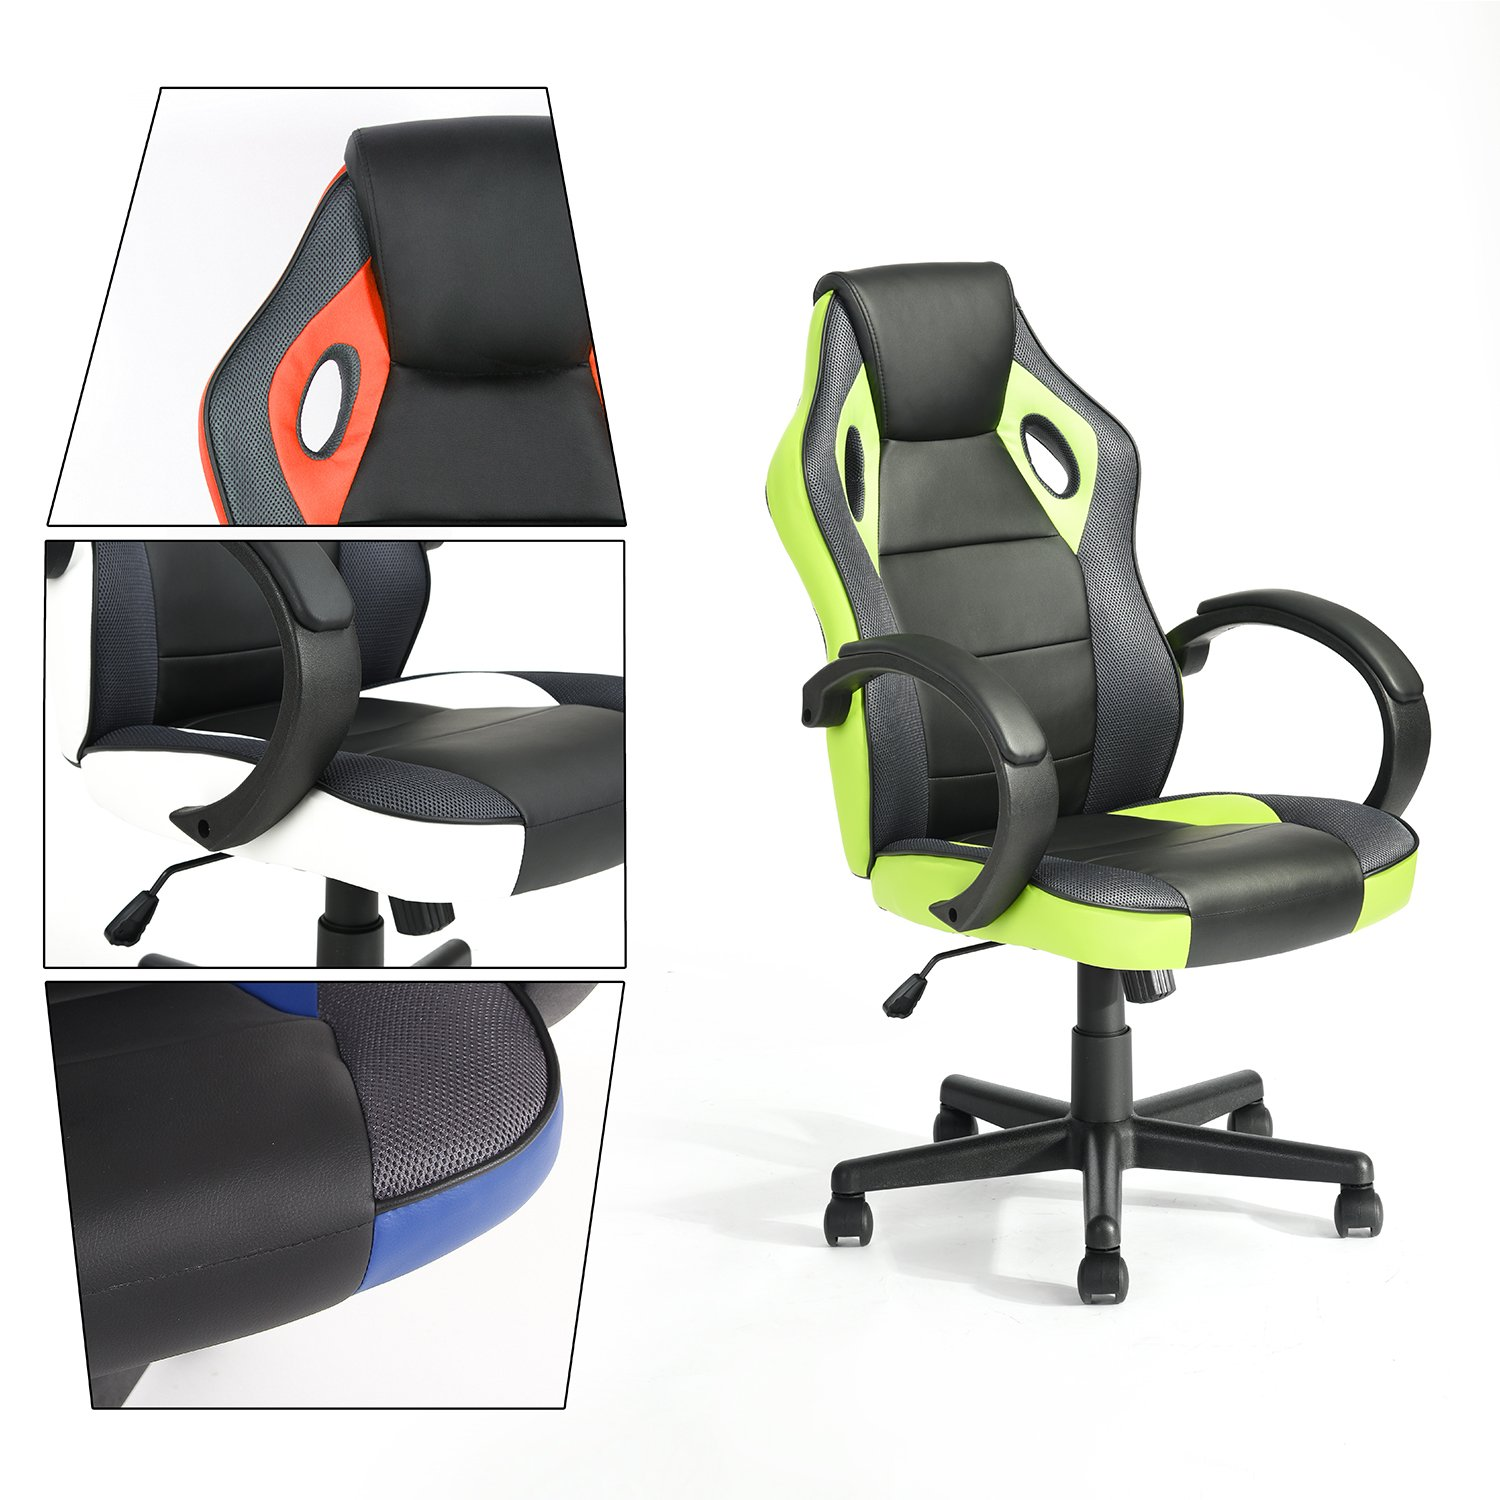 GreenForest Executive Racing Car Style Video Game Chair, Ergonomic Adjustable Swivel Armrest PU Leather Seat High Back For Home Office Desk, Green